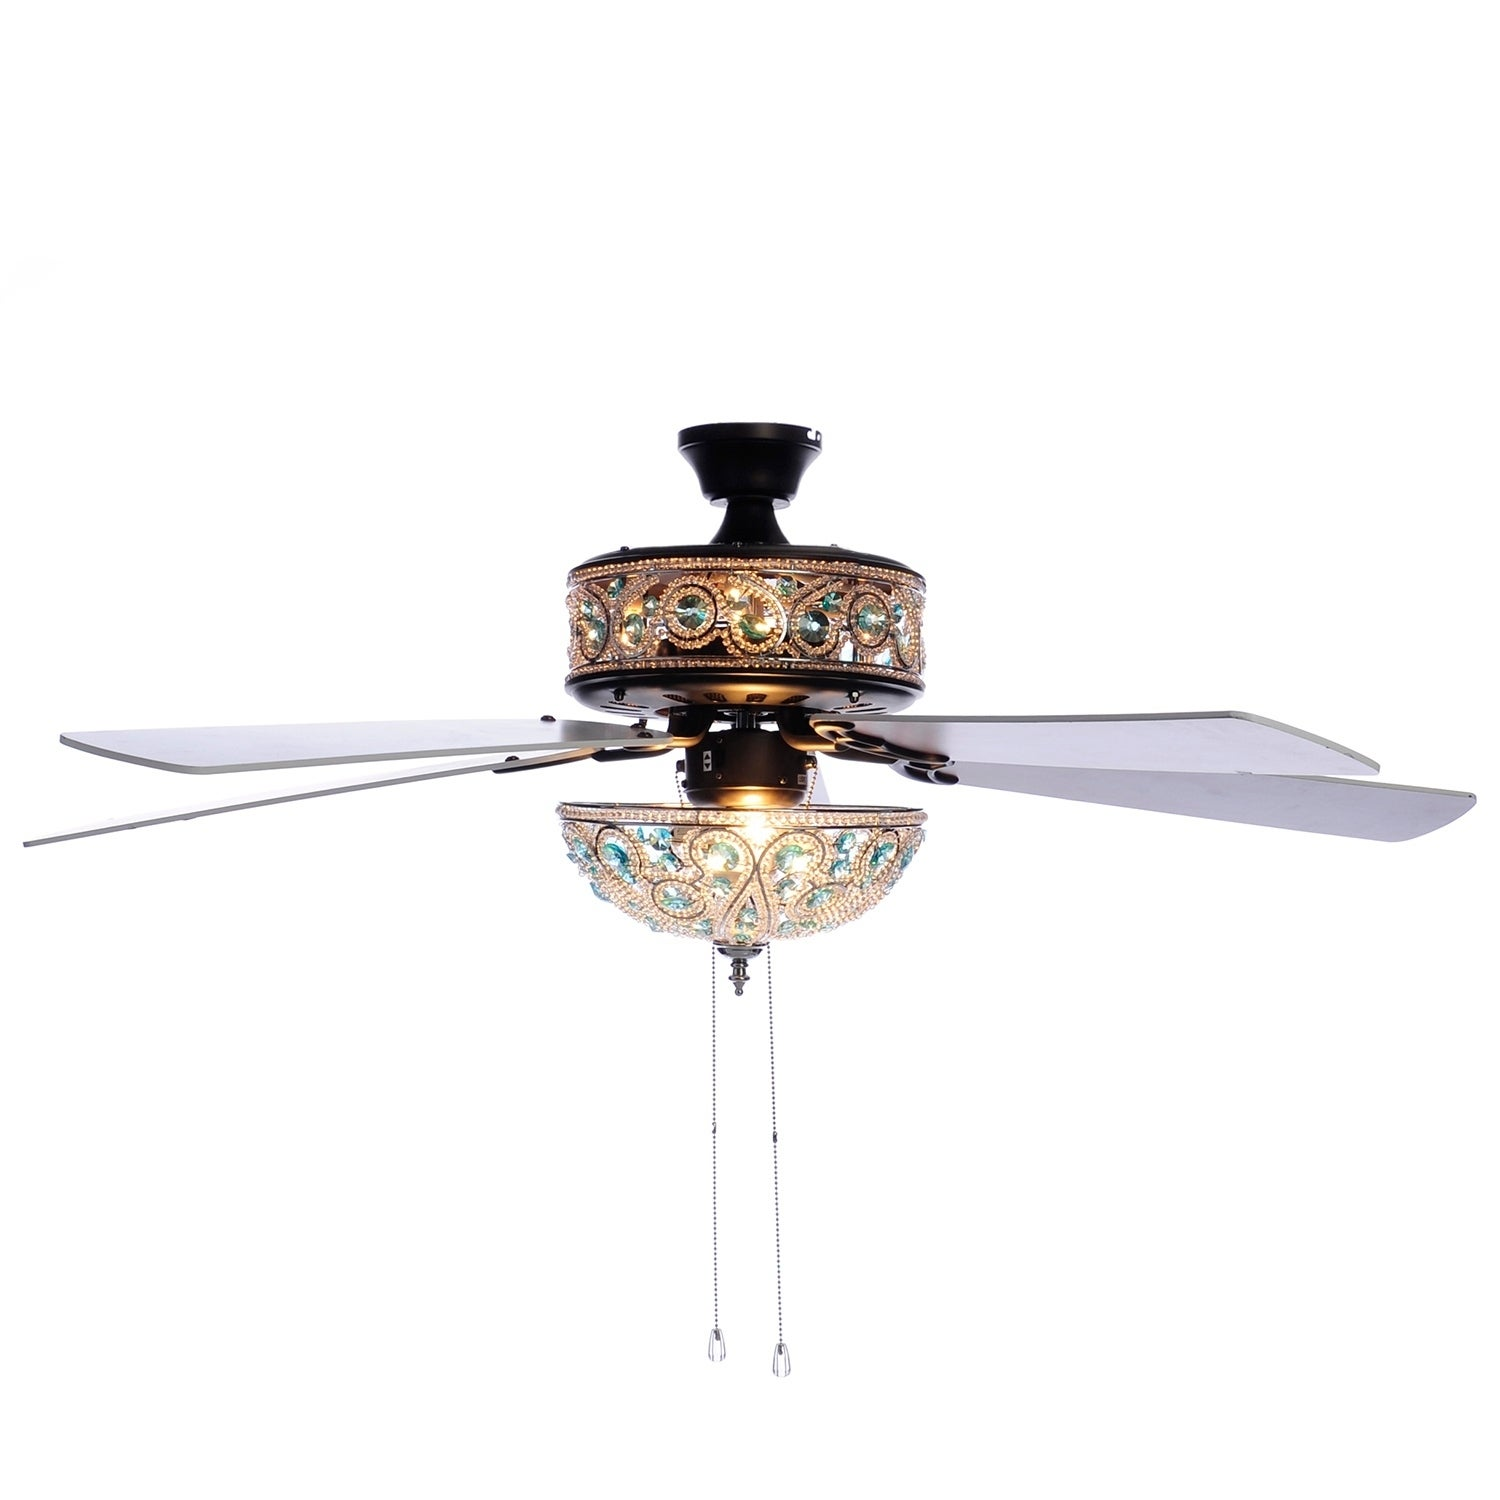 "River of Goods 50"" Chandelier Crystal Ceiling Fan with Remote"